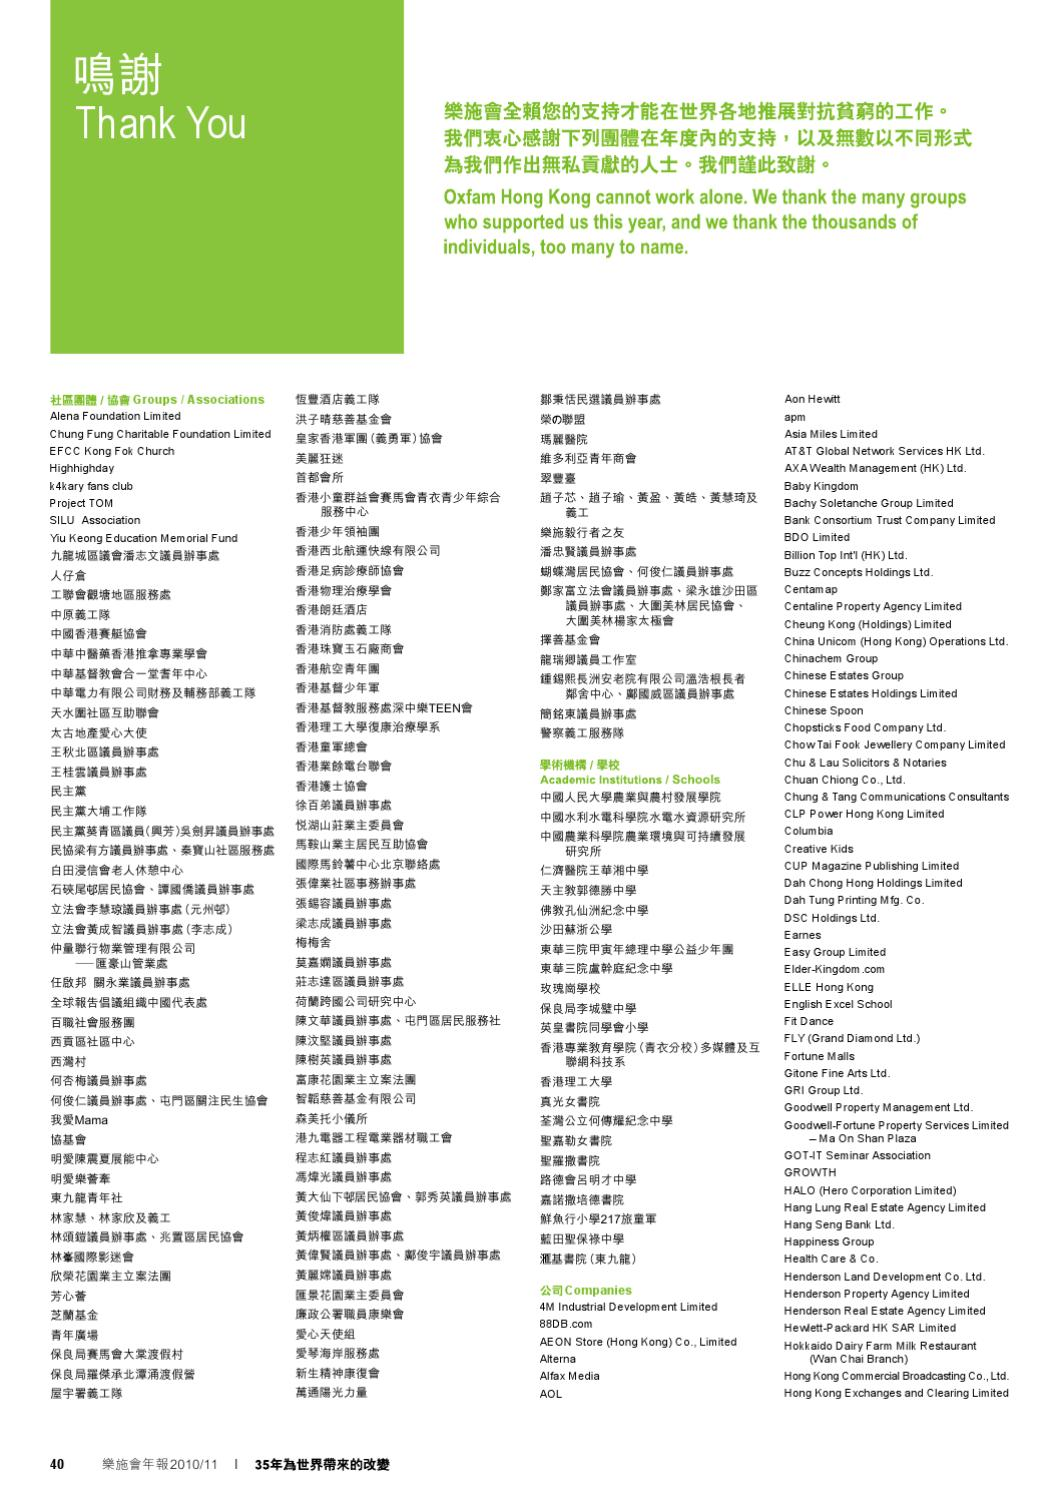 Annual Report 2010/11 by Oxfam Hong Kong - Issuu